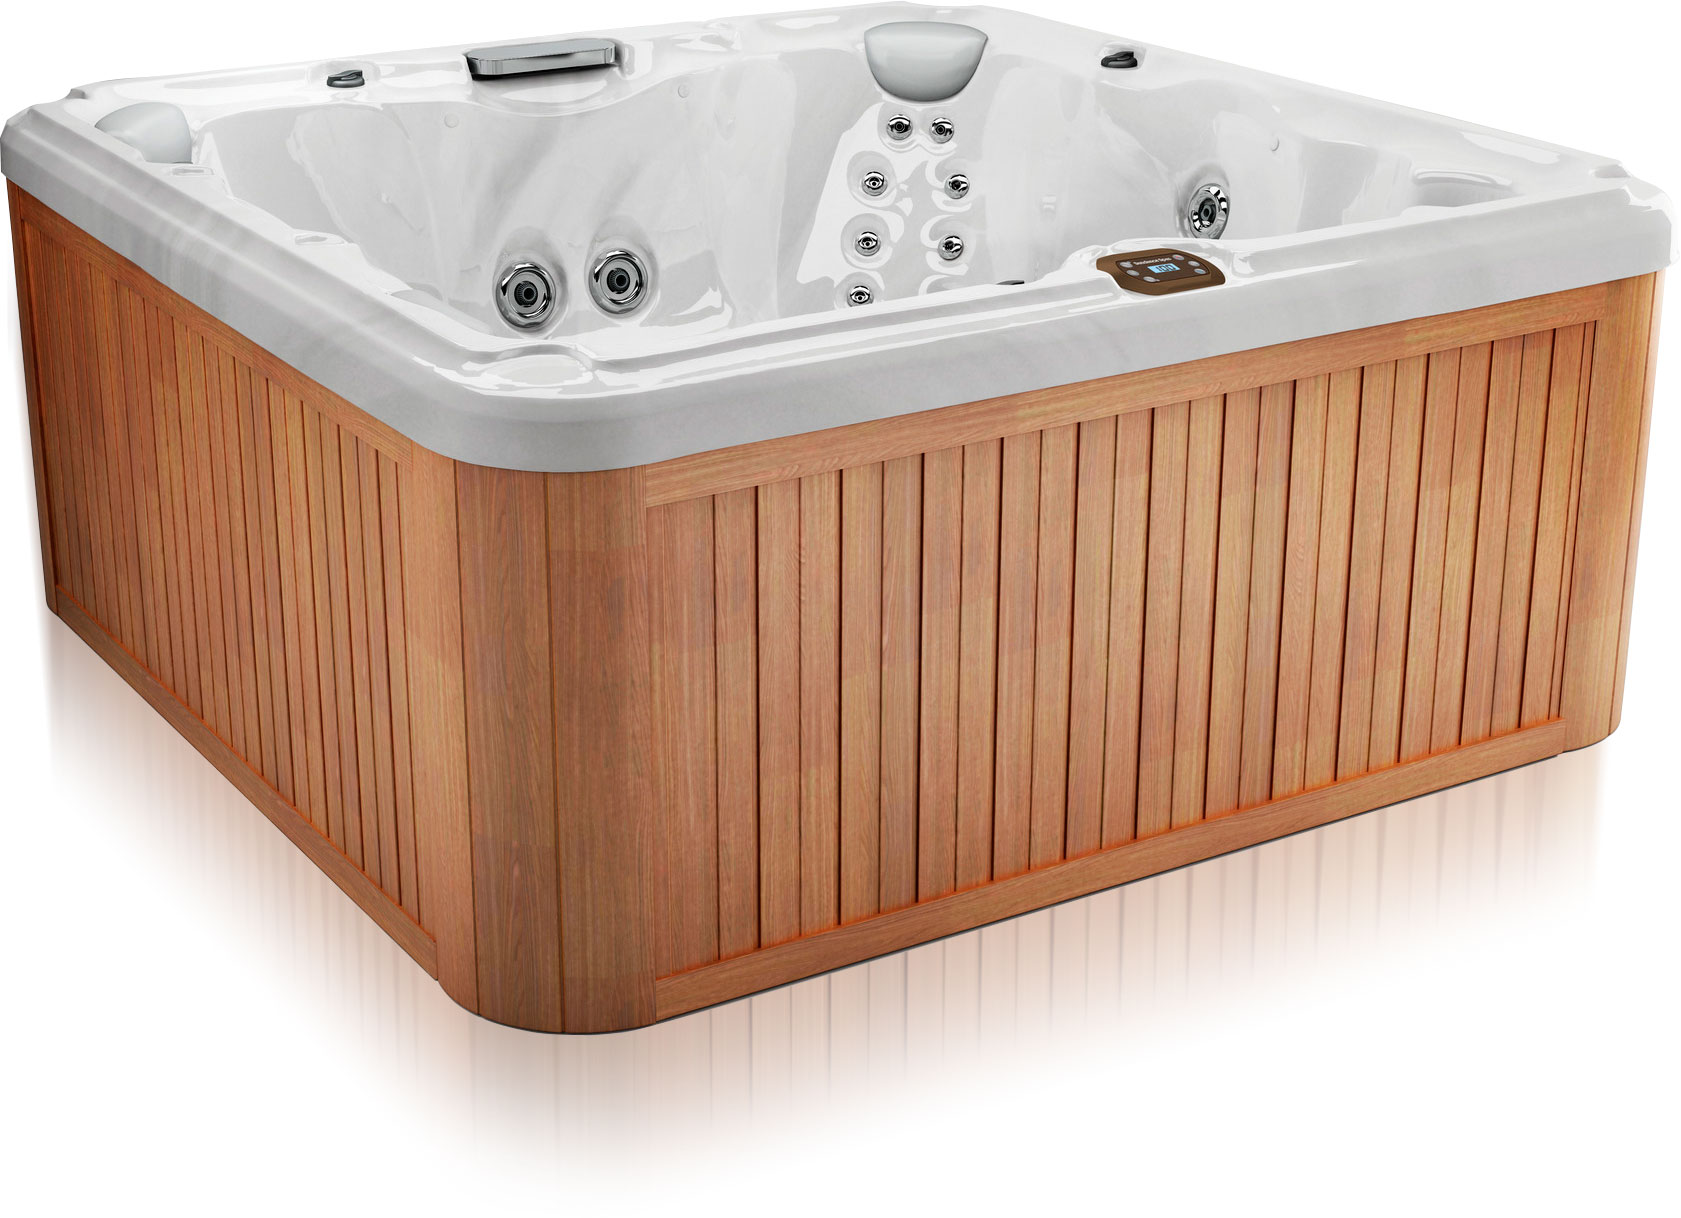 Sundance Spas 680 Series Peyton Hot Tub